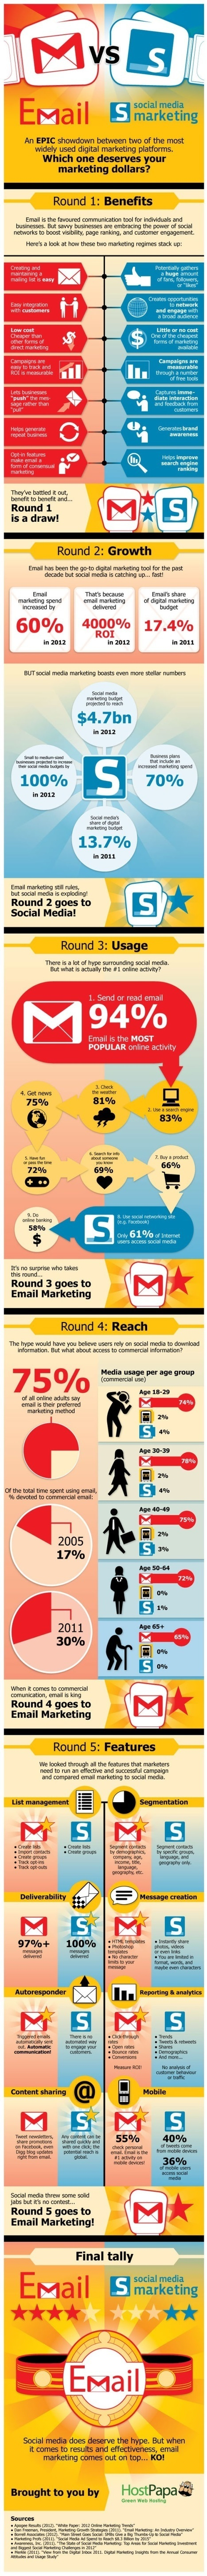 Who wins the marketing war between email versus social media? [INFOGRAPHIC] - Tnooz | Digital Brand Marketing | Scoop.it